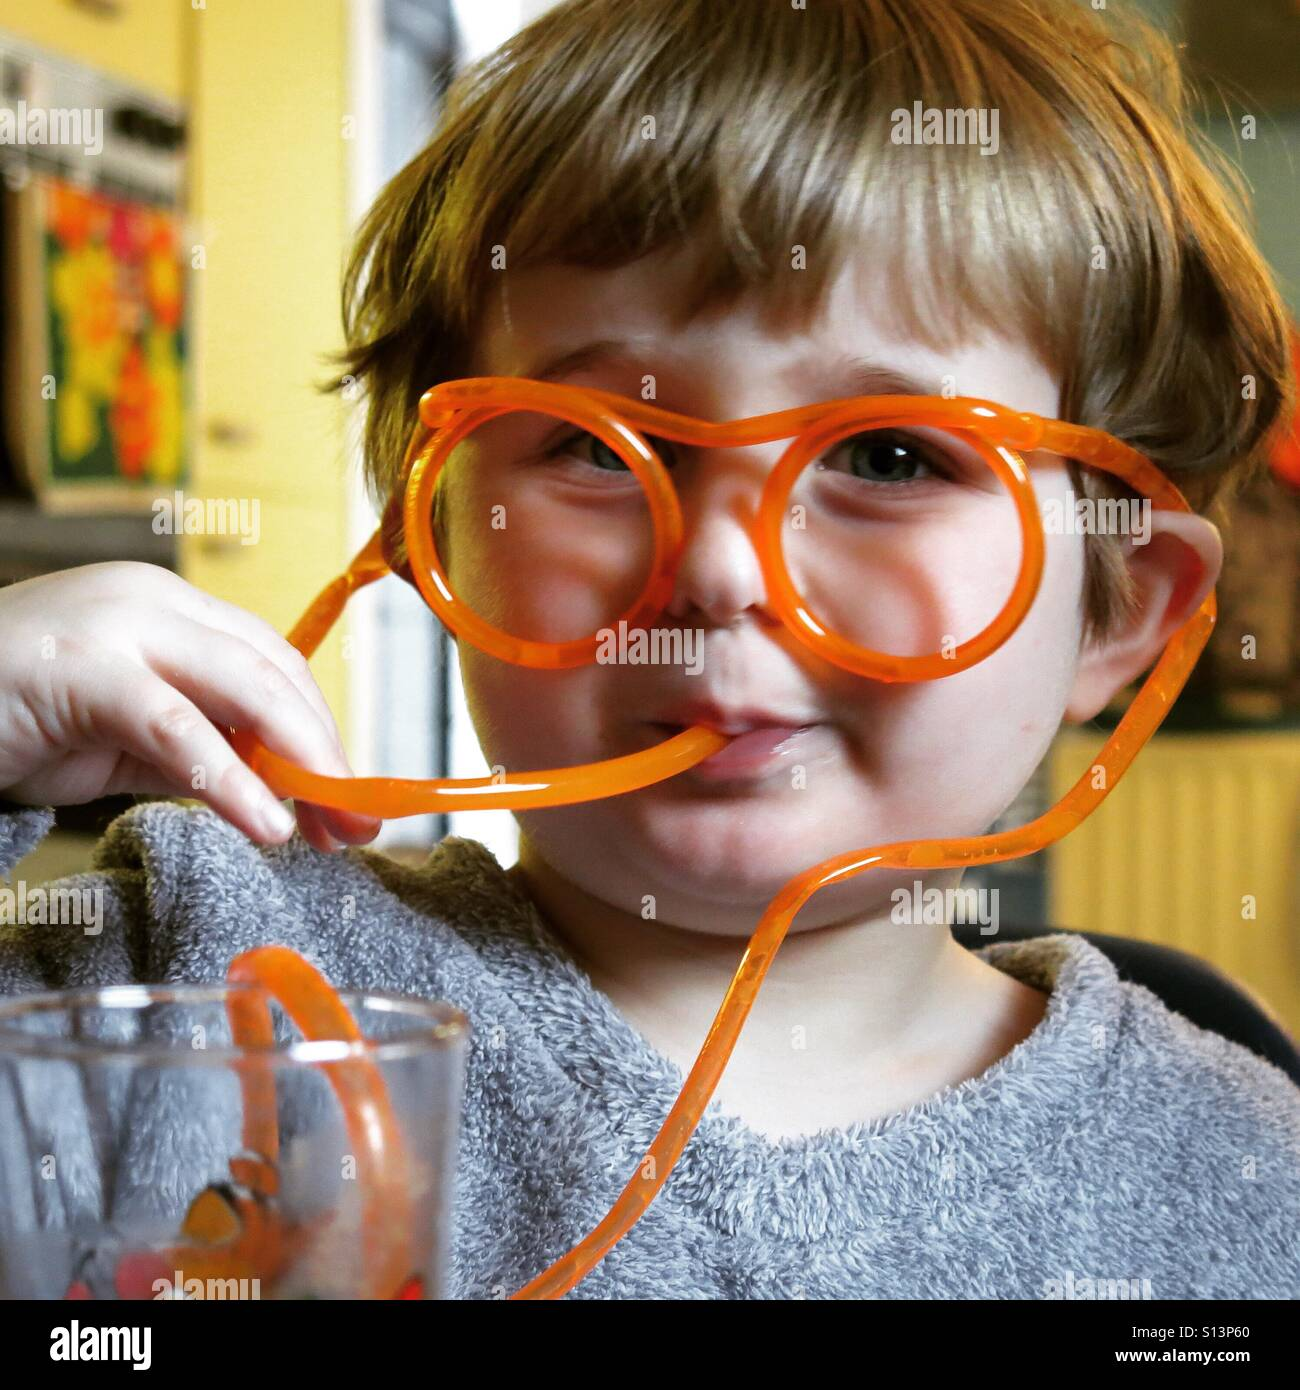 A mischievous young boy wearing spectacle drinking straws looks at the camera - Stock Image